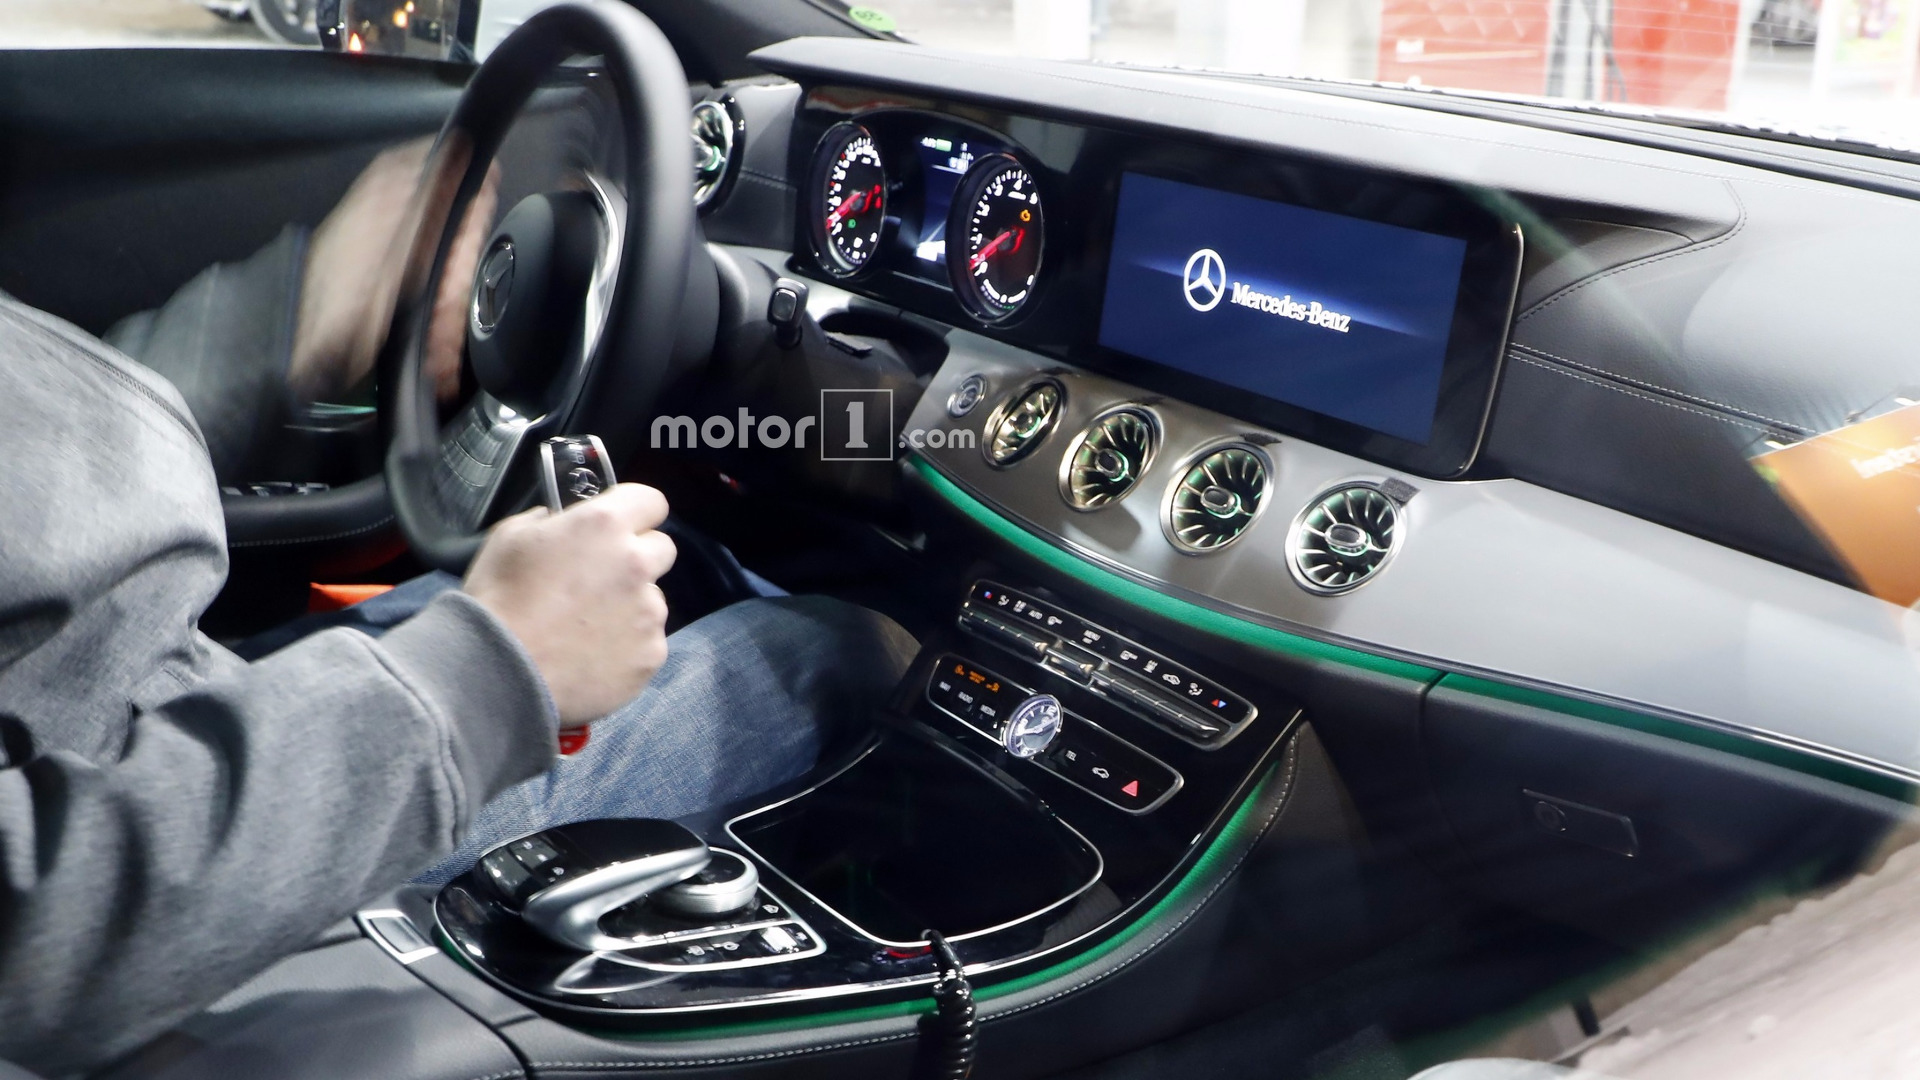 Mercedes Cls Interior 2018 >> 2018 Mercedes CLS spied inside showing its E-Class roots